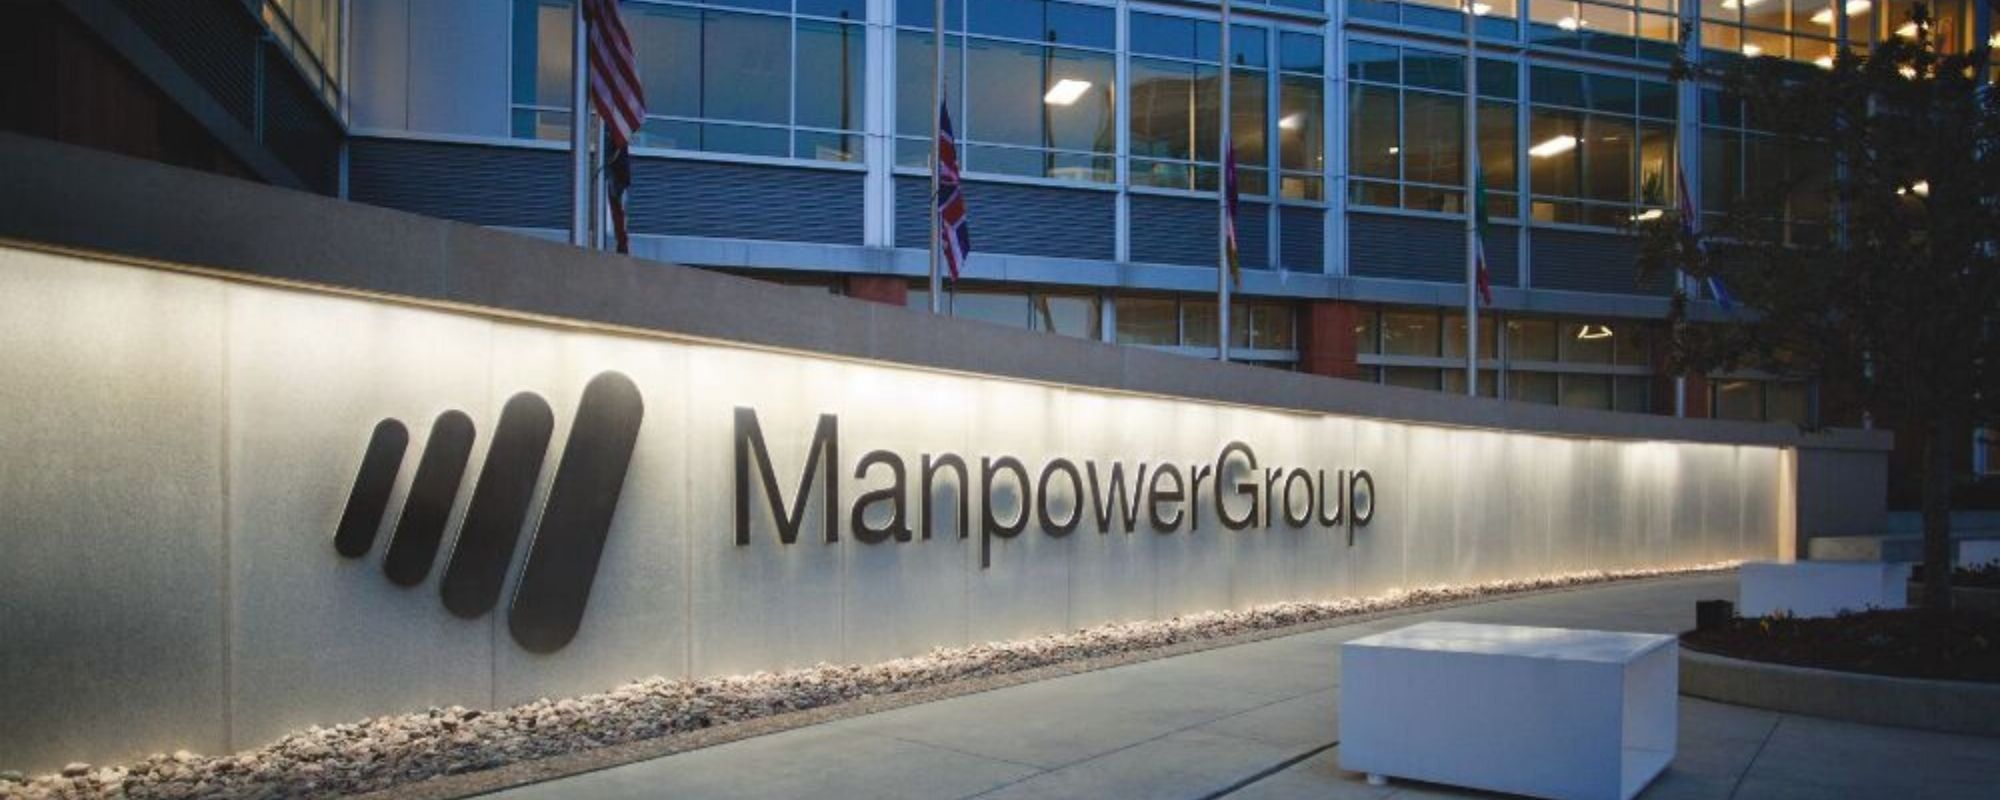 Manpower building and logo